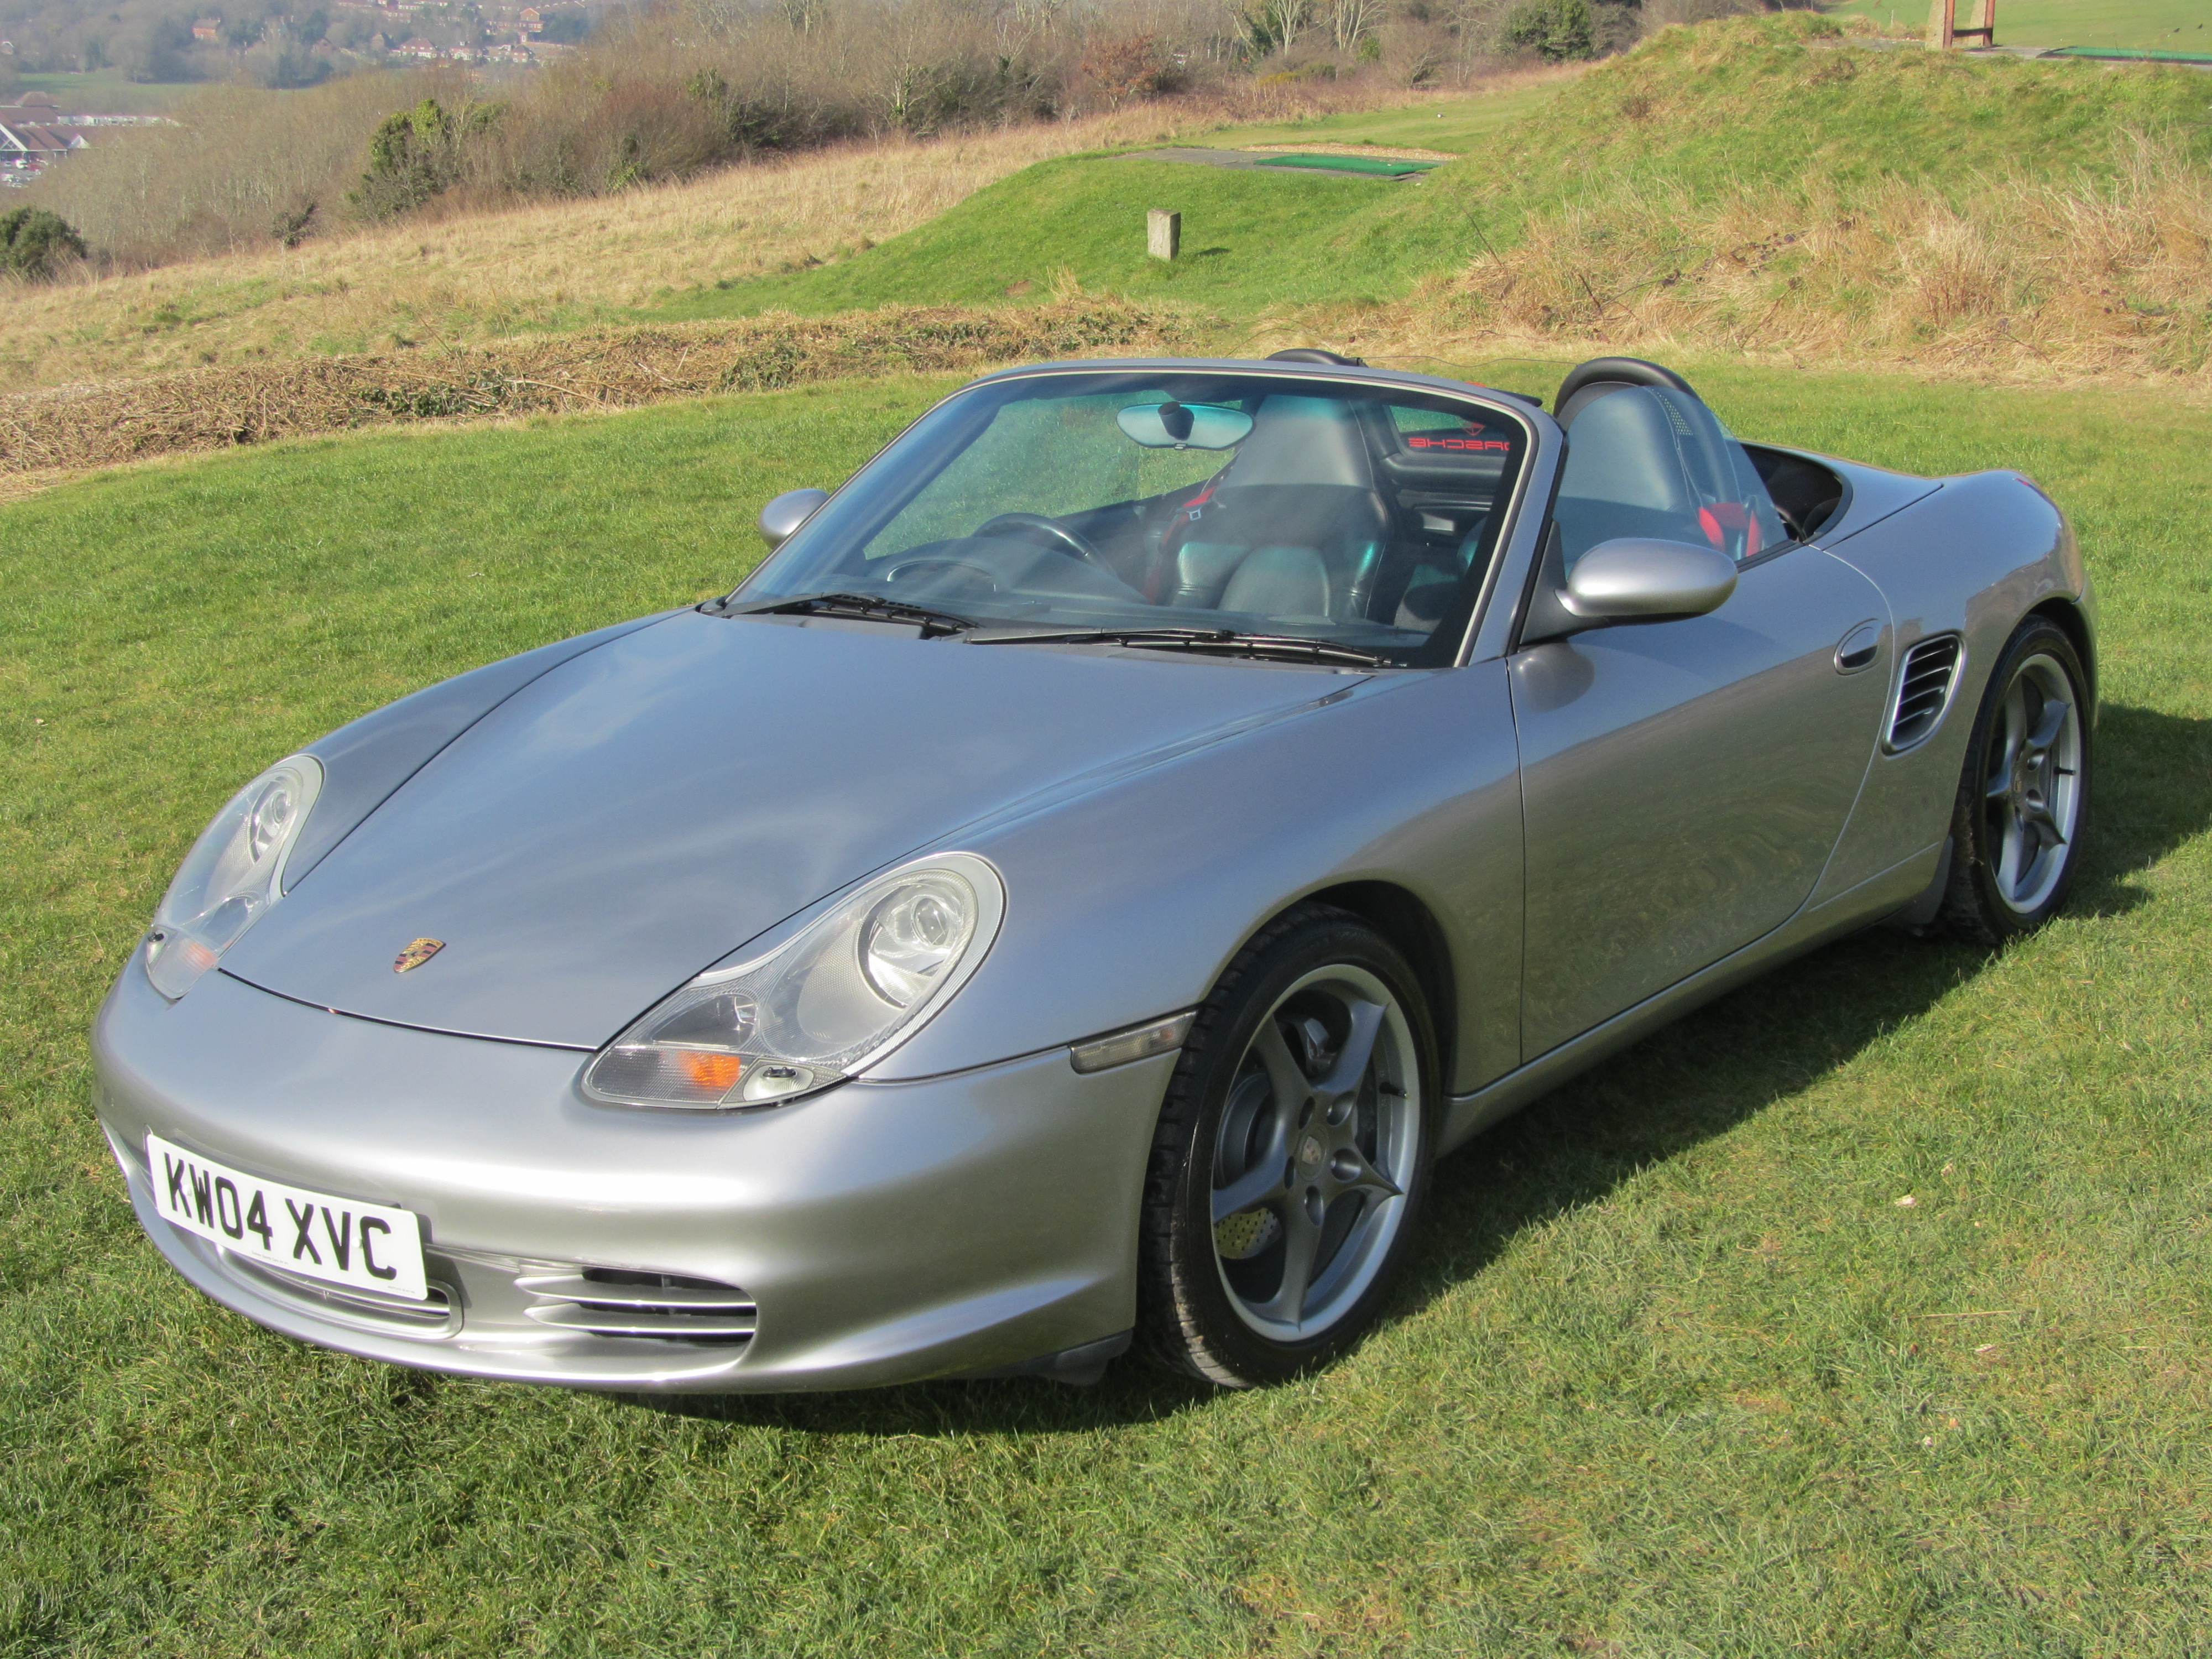 Porsche Boxster S Limited edtion 550 Spyder Tipronic S GT Silver for sale